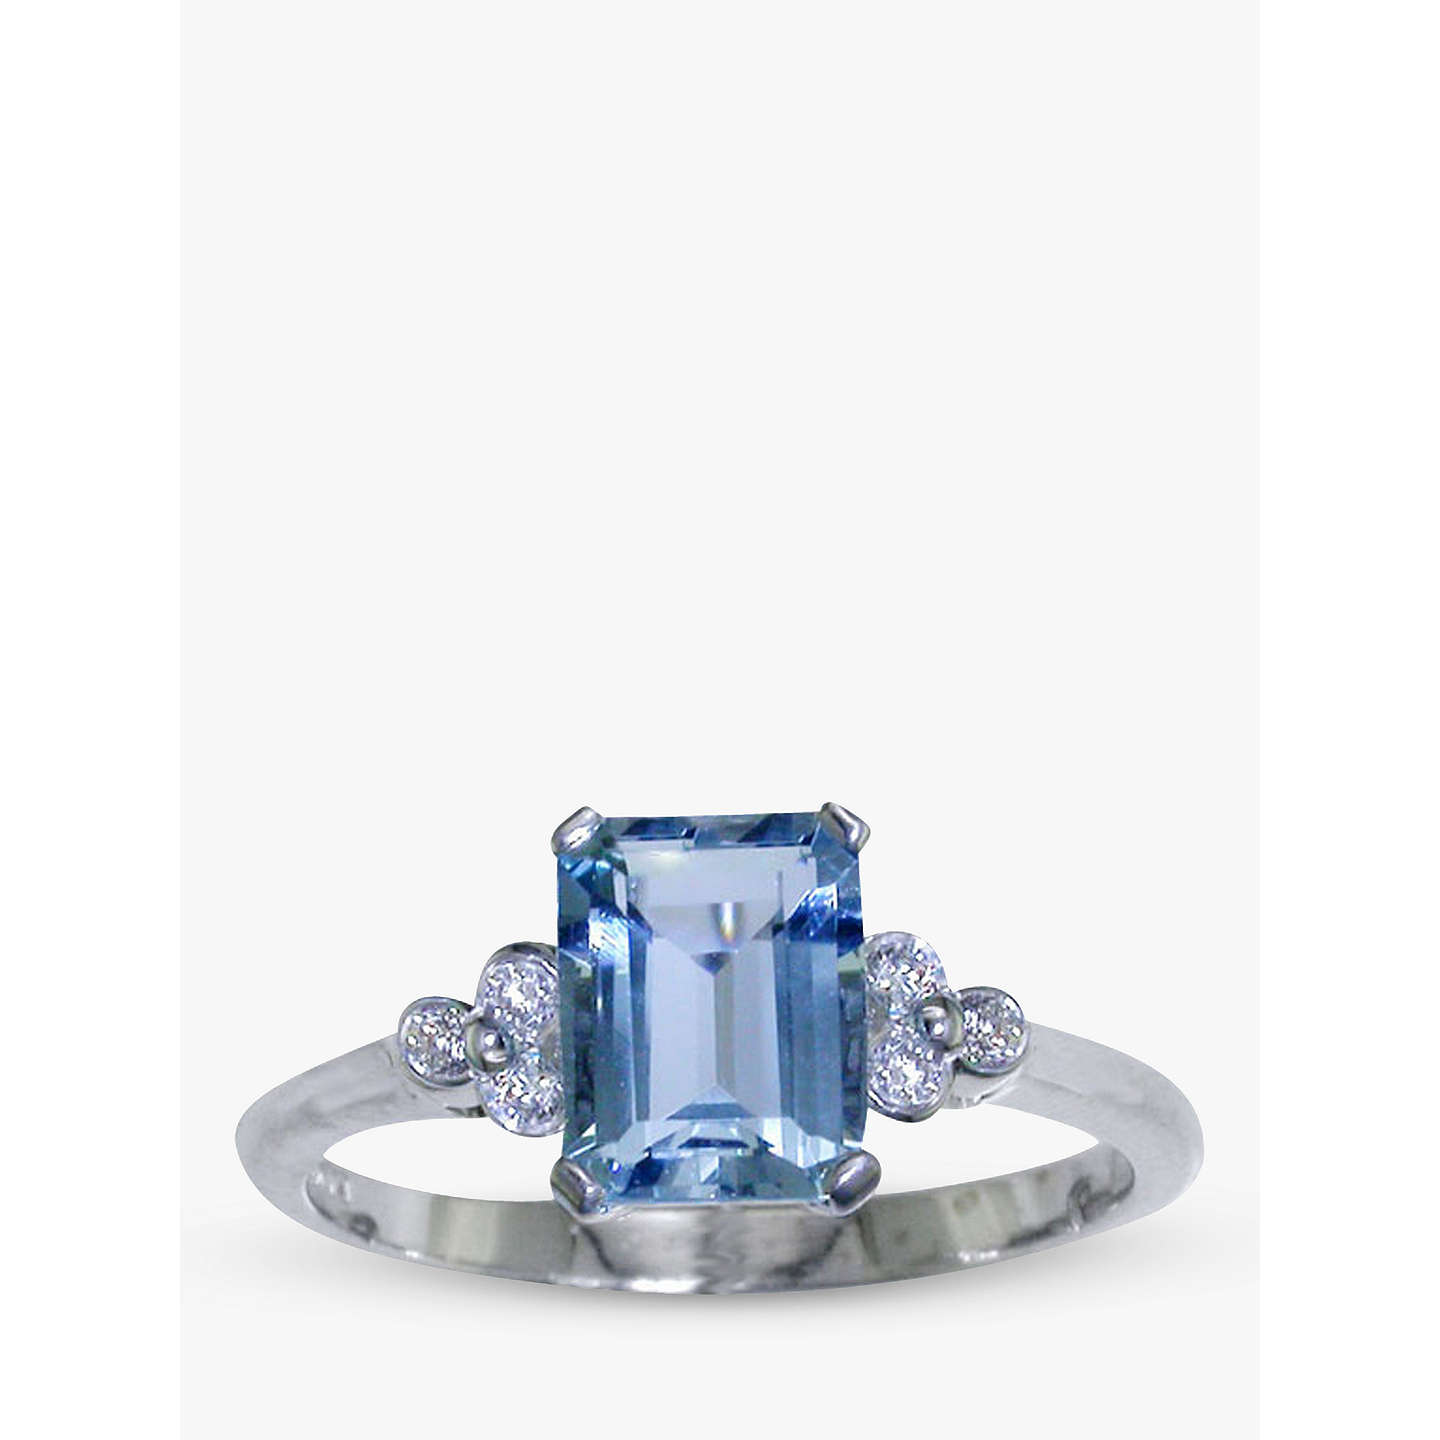 image poletti product pale jewellery aquamarine ring of